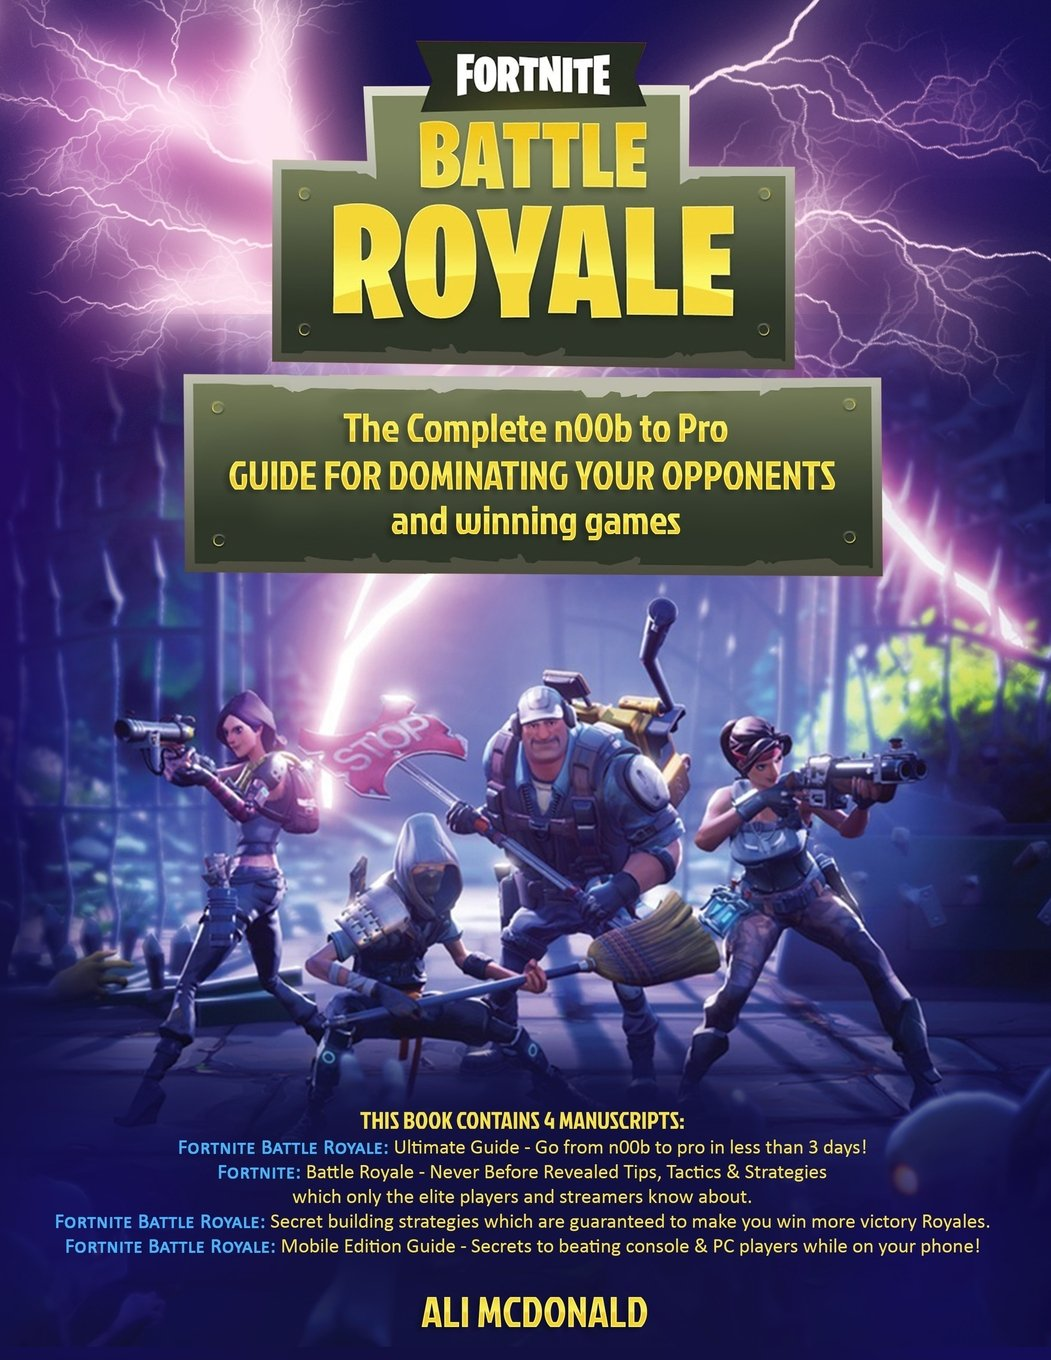 Pro Fortnite Games Buy Fortnite Battle Royale The Complete N00b To Pro Guide For Dominating Your Opponents Andwinning Games Book Online At Low Prices In India Fortnite Battle Royale The Complete N00b To Pro